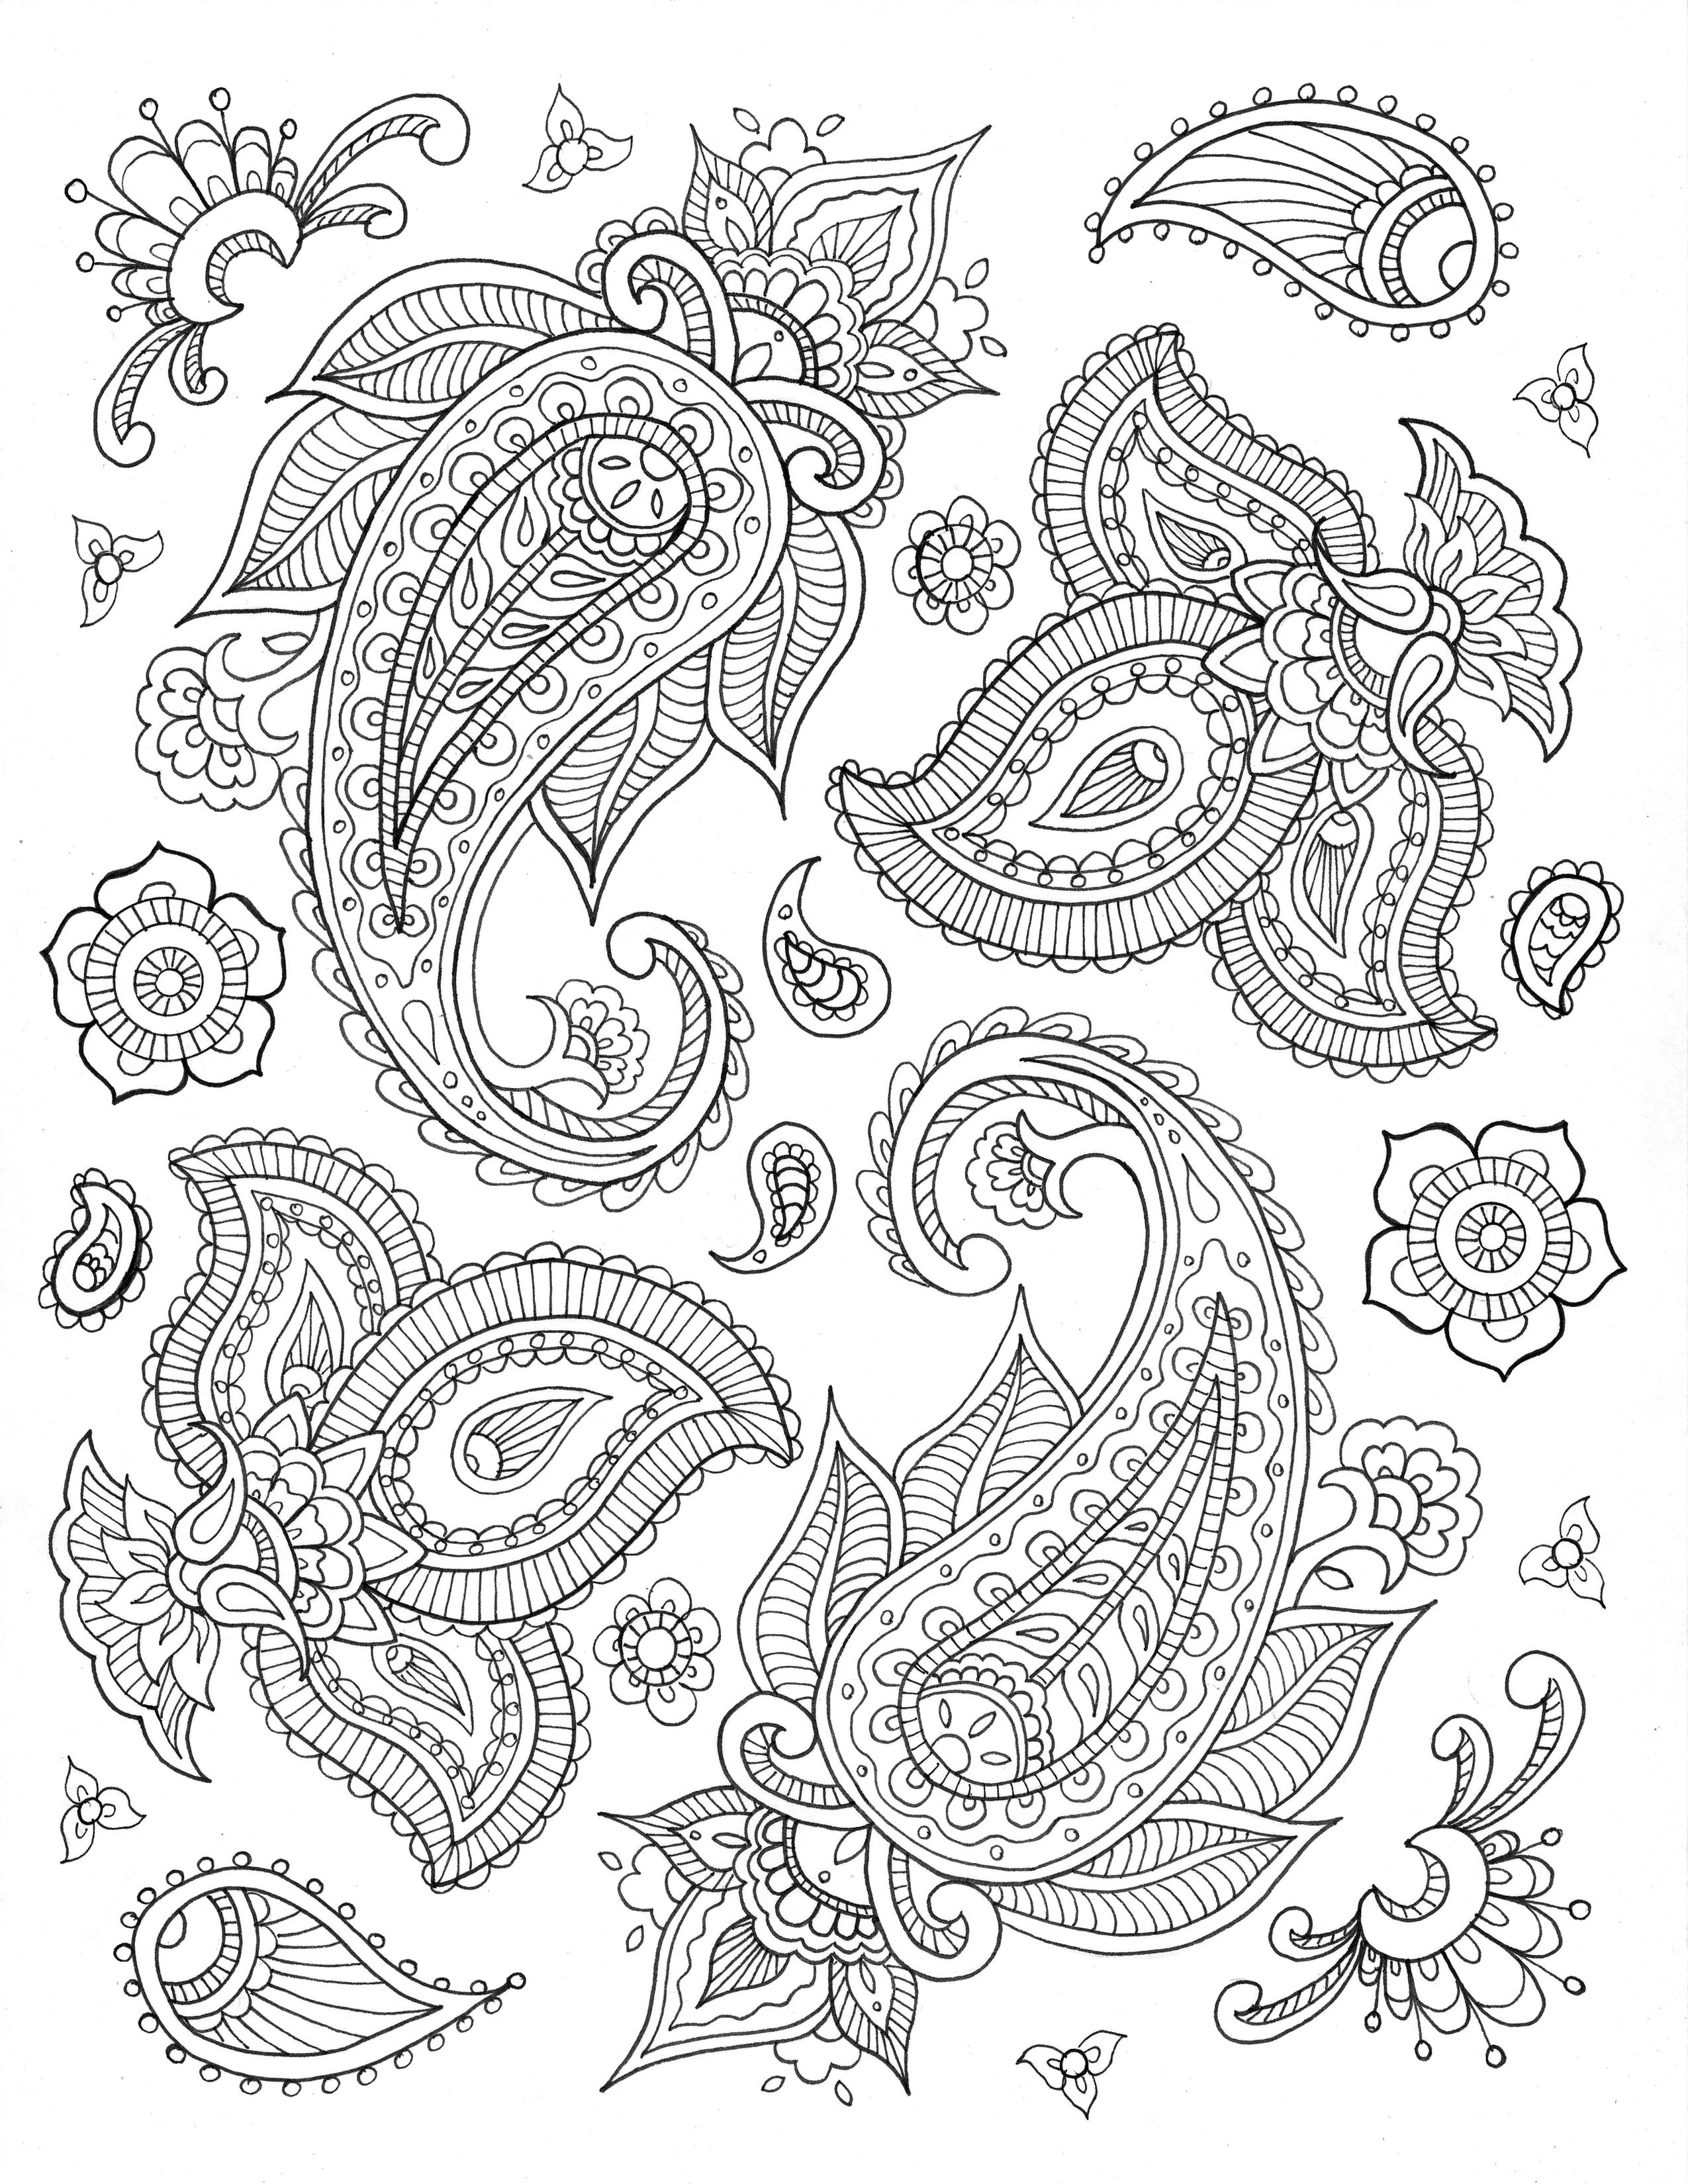 eHow.com : free printable coloring pages by Sarah Hamilton : Paisley ...